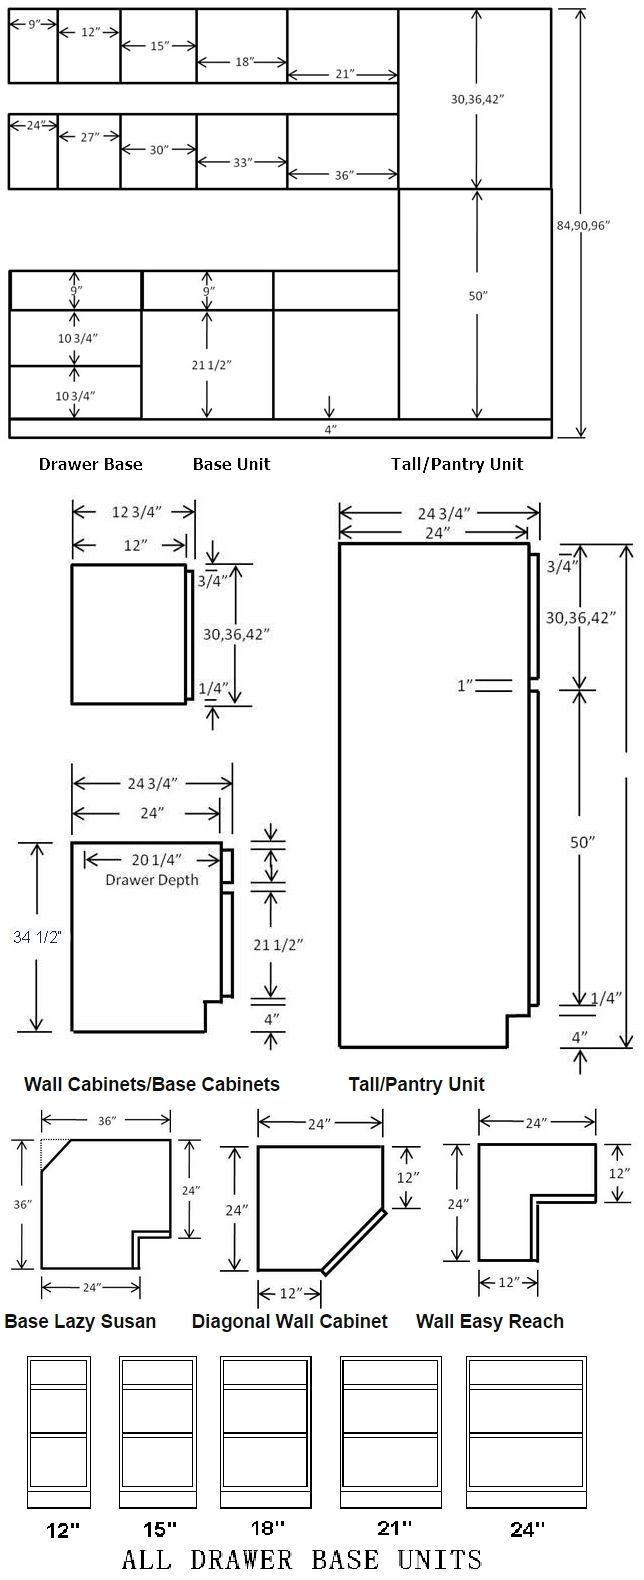 Standard Cabinet Dimensions Available from most cabinet suppliers. Kitchen cabinets that sit on the floor are called 'Base Cabinets', while the upper cabinets are called 'Wall Cabinets'.